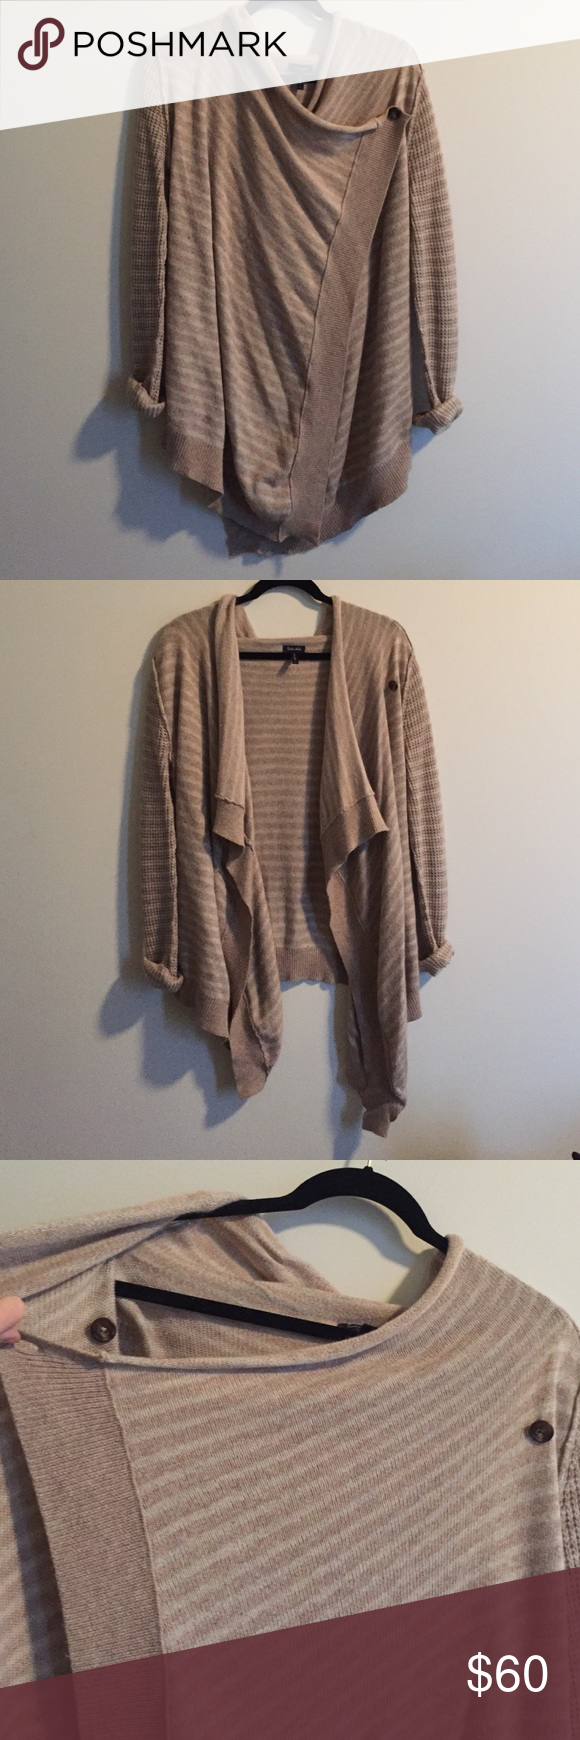 Splendid cardigan/wrap Cozy Splendid cardigan/wrap size small. Can be worn open as cardigan or wrapped. Super soft and looks great on! Cotton,nylon,viscose,angora Splendid Sweaters Cardigans